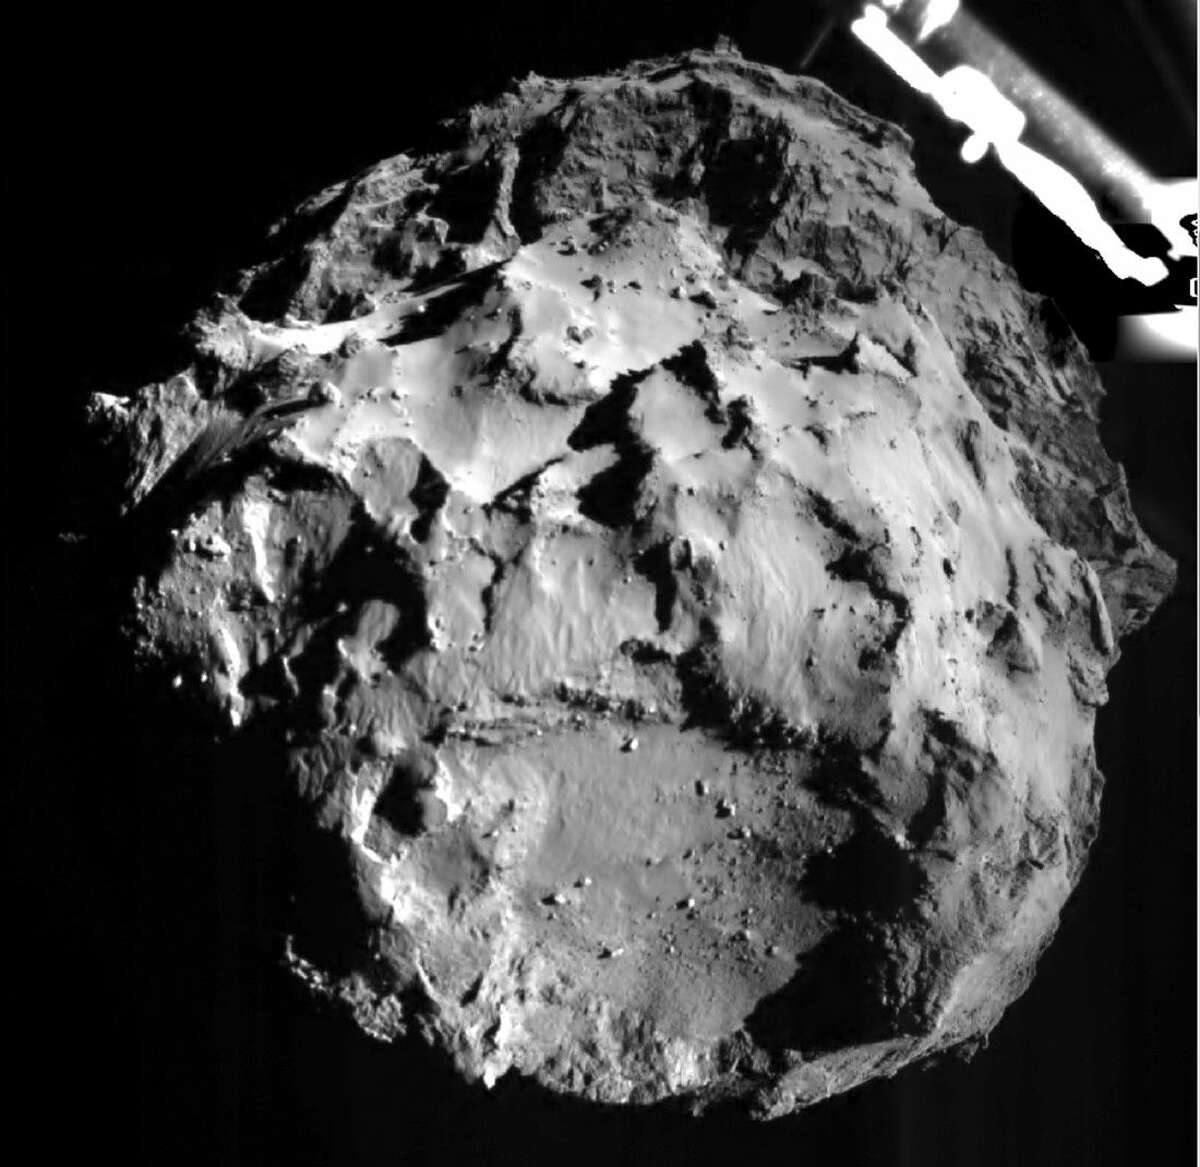 The picture released by the European Space Agency ESA on Wednesday, Nov. 12, 2014 was taken by the ROLIS instrument on Rosetta's Philae lander during descent from a distance of approximately 3 km from the 4-kilometer-wide (2.5-mile-wide) 67P/Churyumov-Gerasimenko comet. Hundreds of millions of miles from Earth, the European spacecraft made history Wednesday by successfully landing on the icy, dusty surface of a speeding comet.